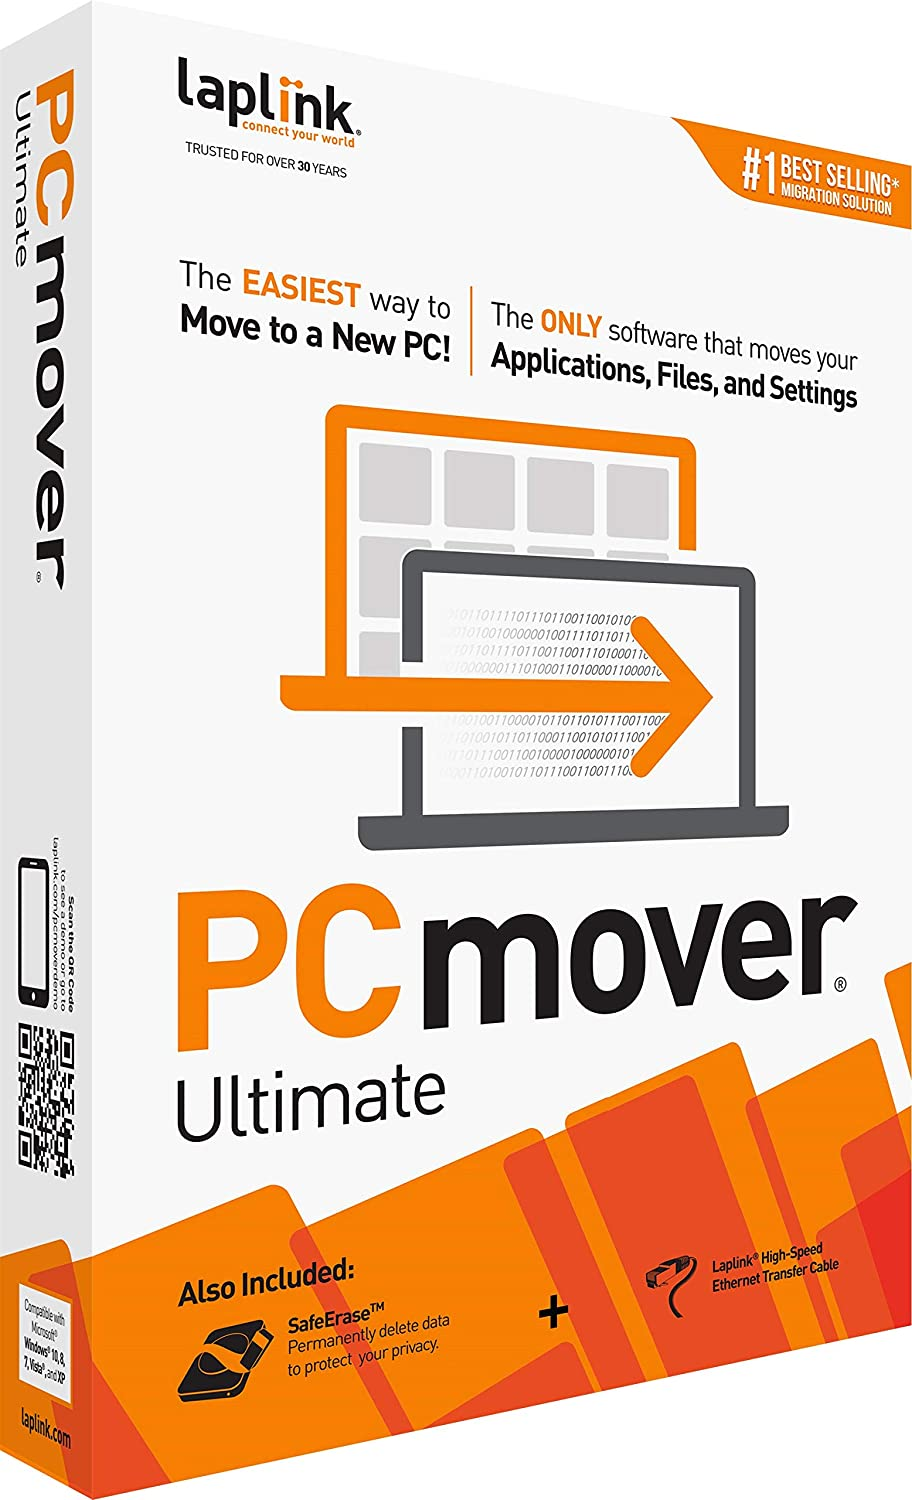 Laplink PCmover Ultimate 11 | Moves your Applications, Files and Settings from an Old PC to a New PC | Includes Optional Ethernet Cable | 1 Use